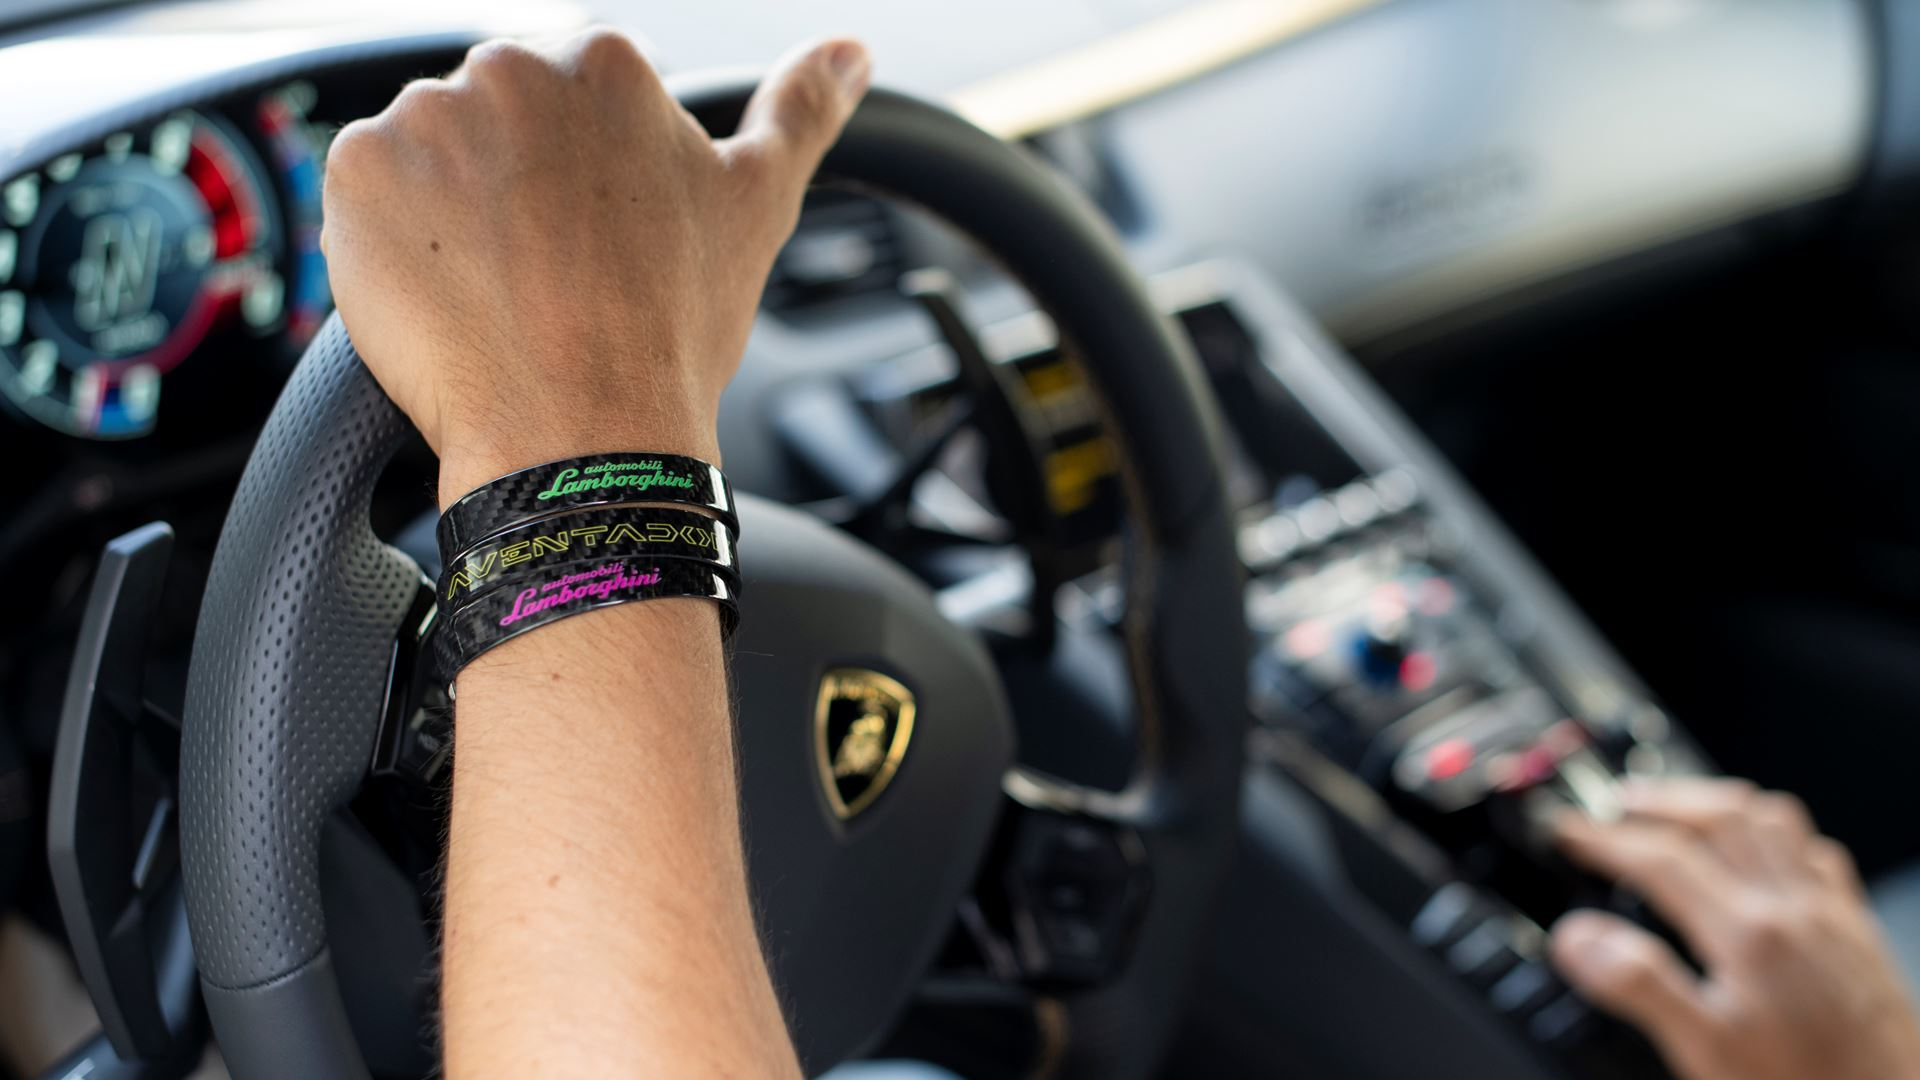 #Focu5on: five things you didn't know about Lamborghini environmental sustainability - Image 4